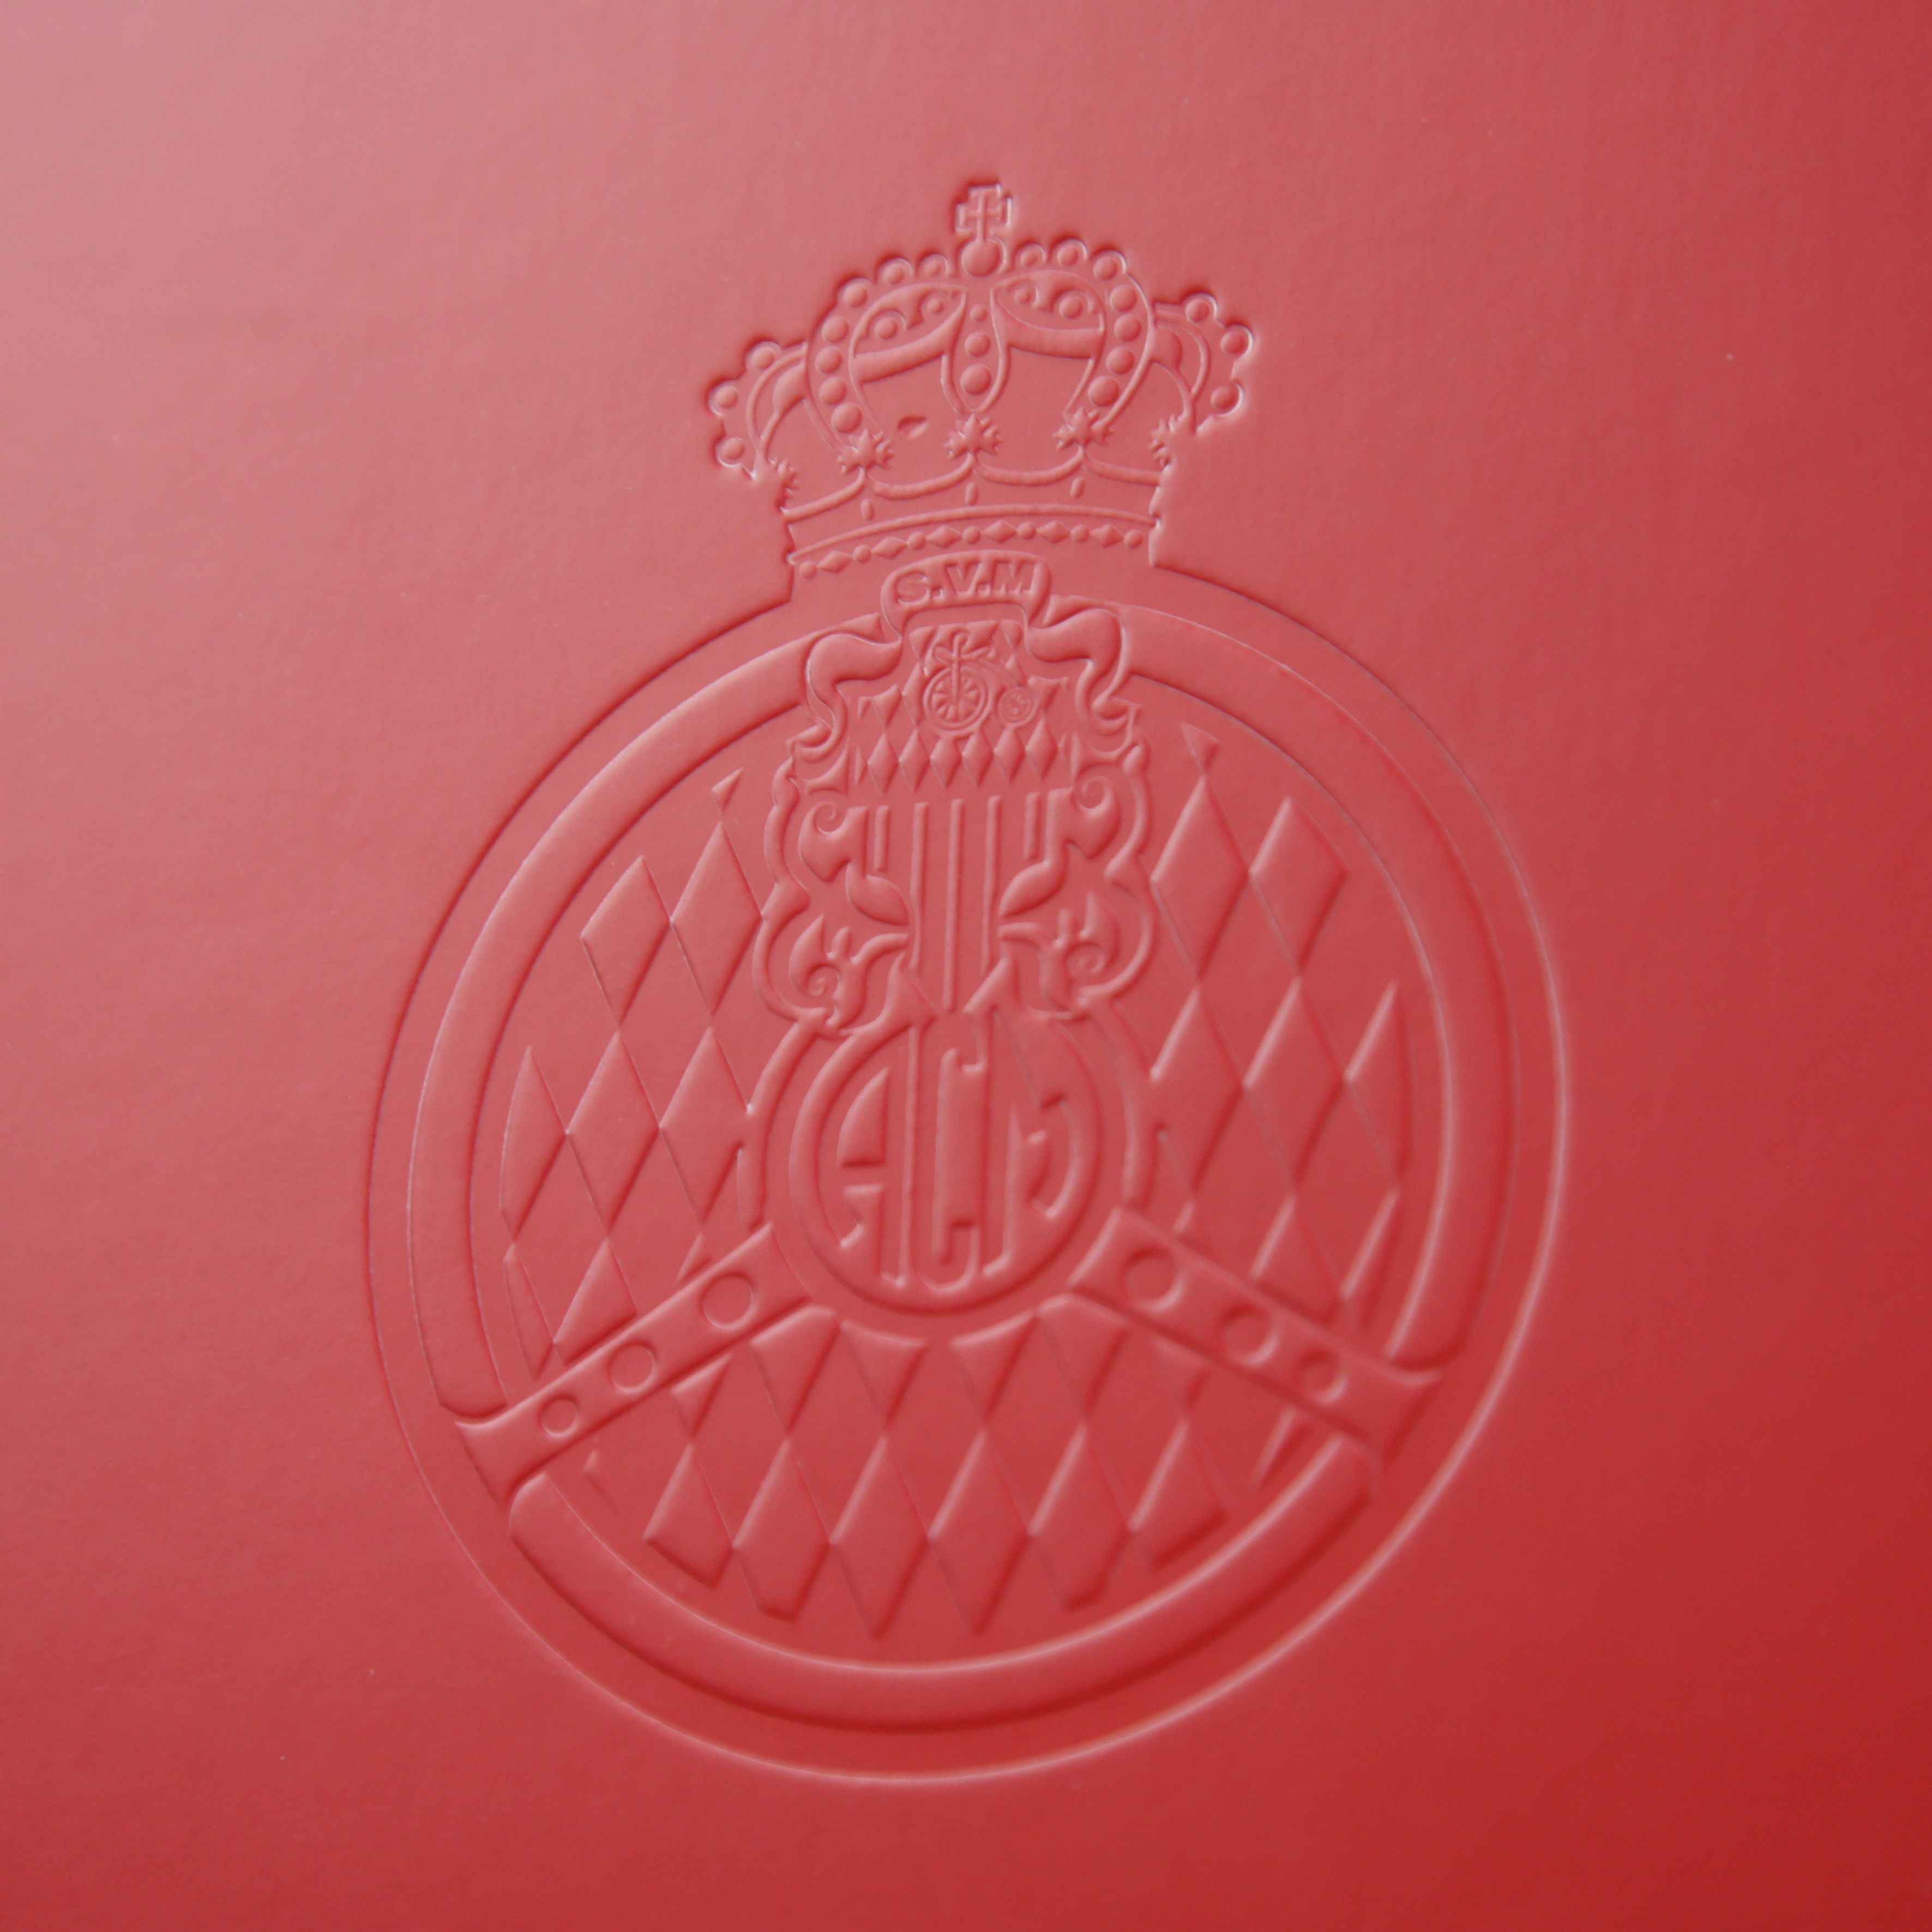 Embossing (printing in relief, without any ink)